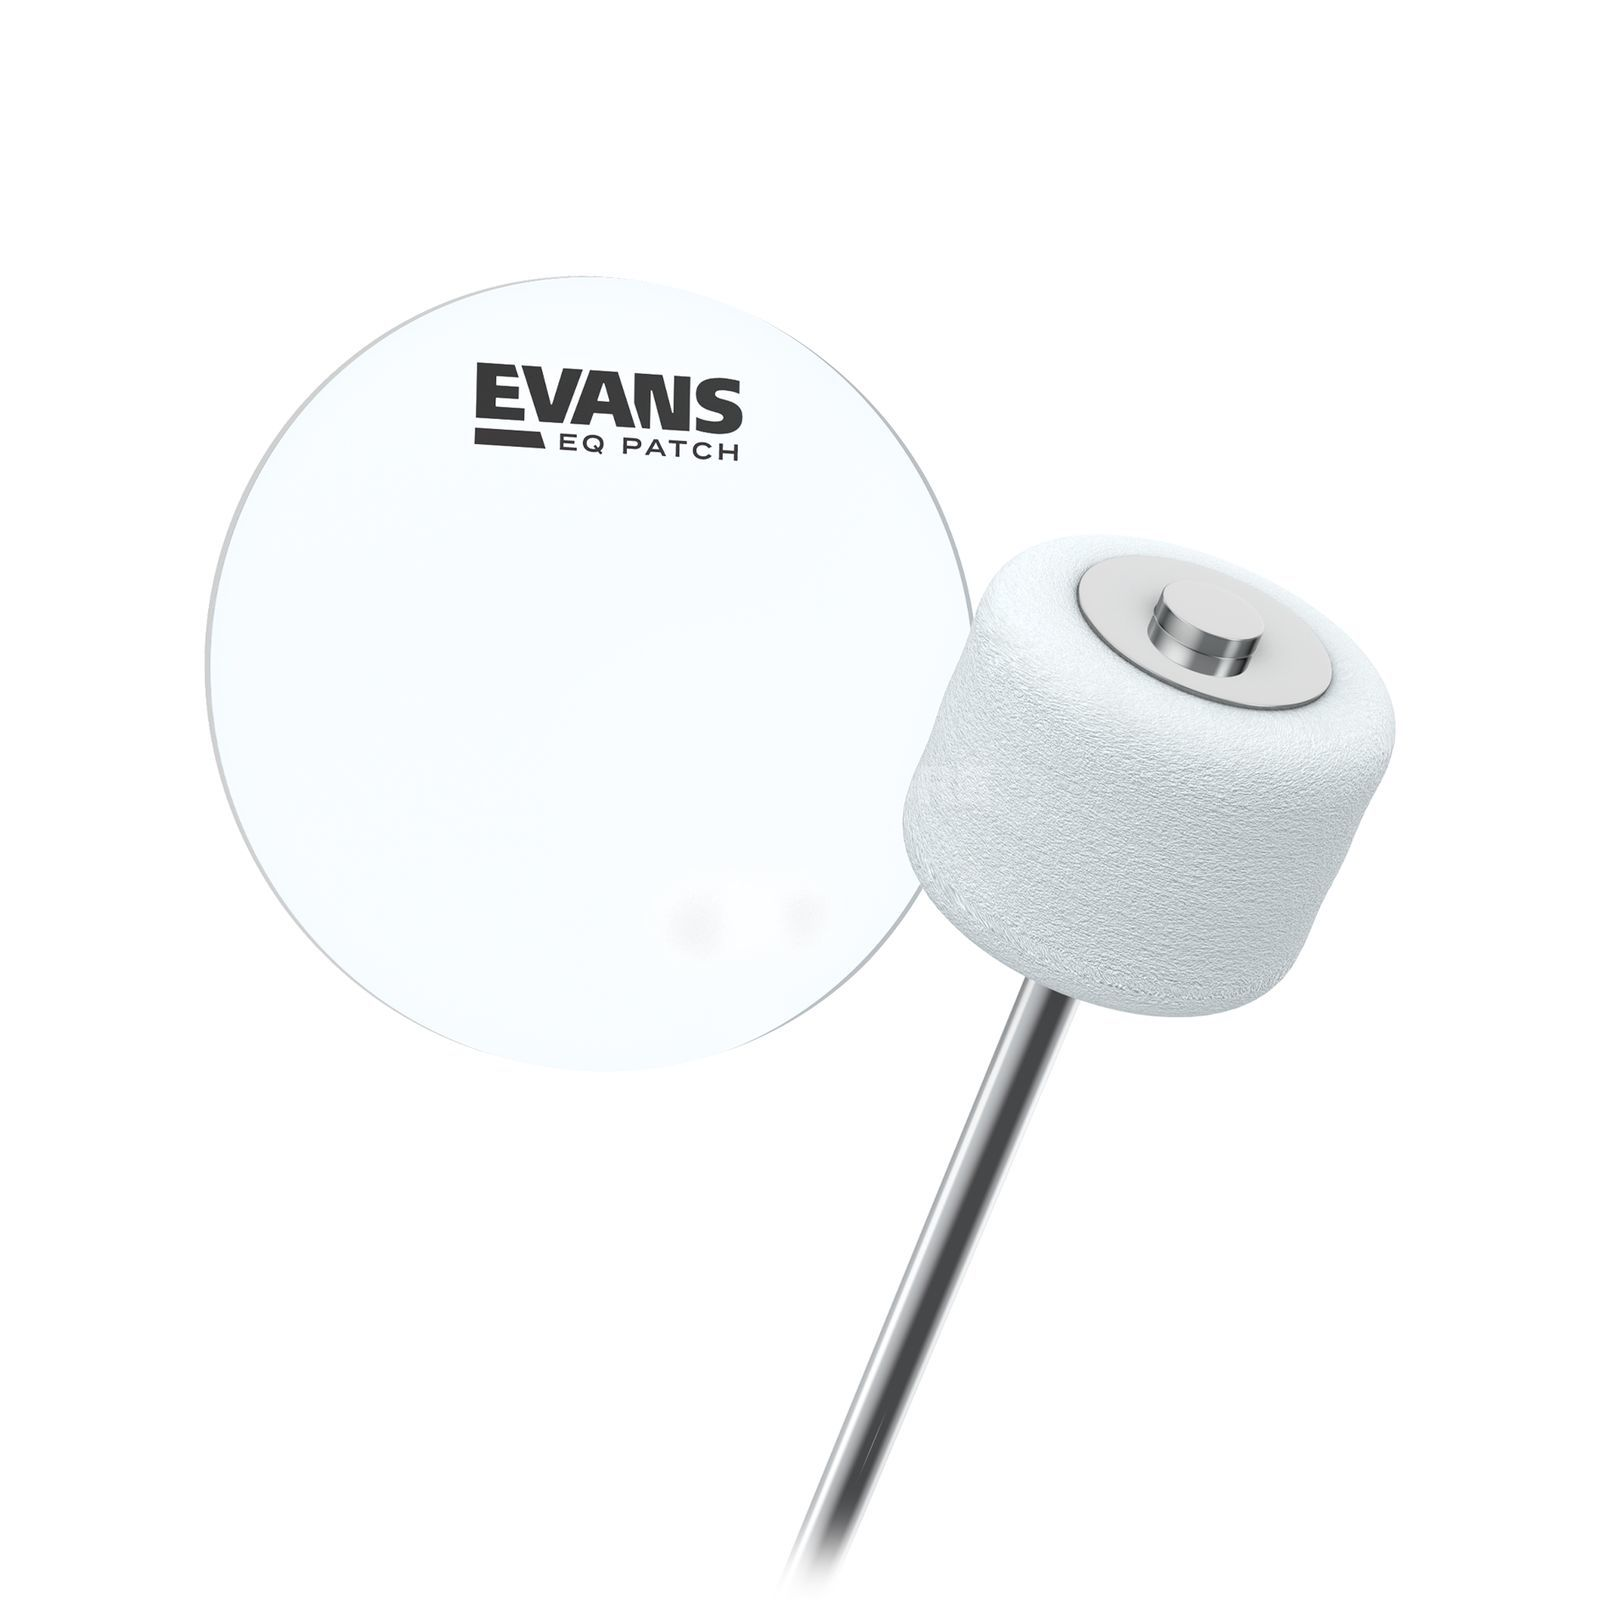 Evans EQ Patch EQPC1 grosse caisse  Patch Image du produit